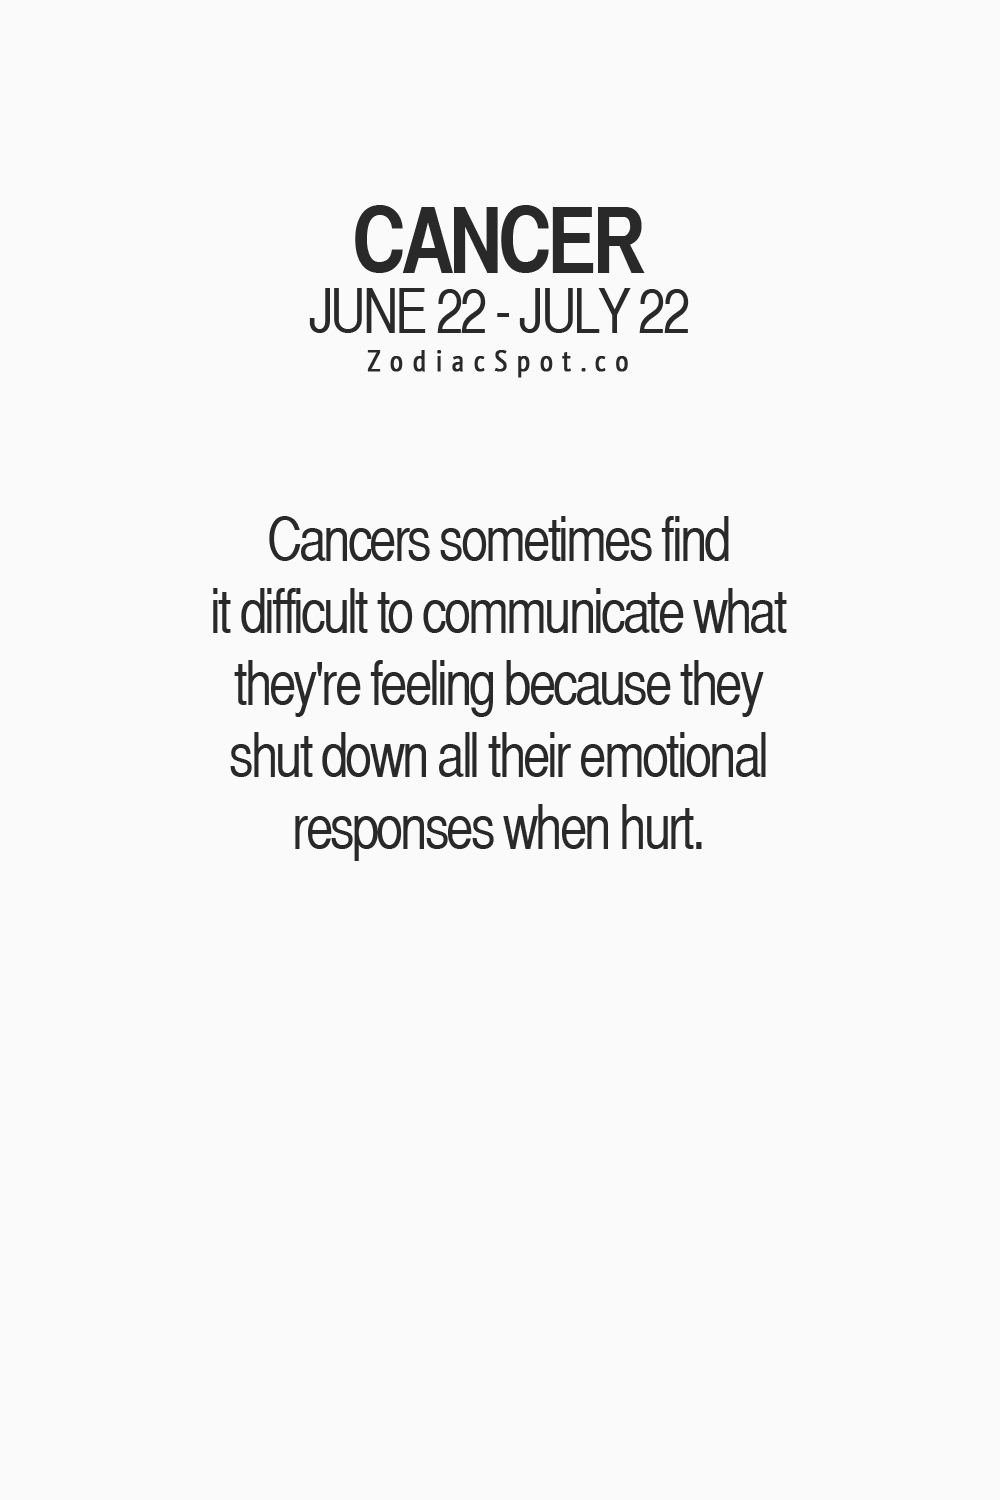 Typical Zodiac Sign Issues